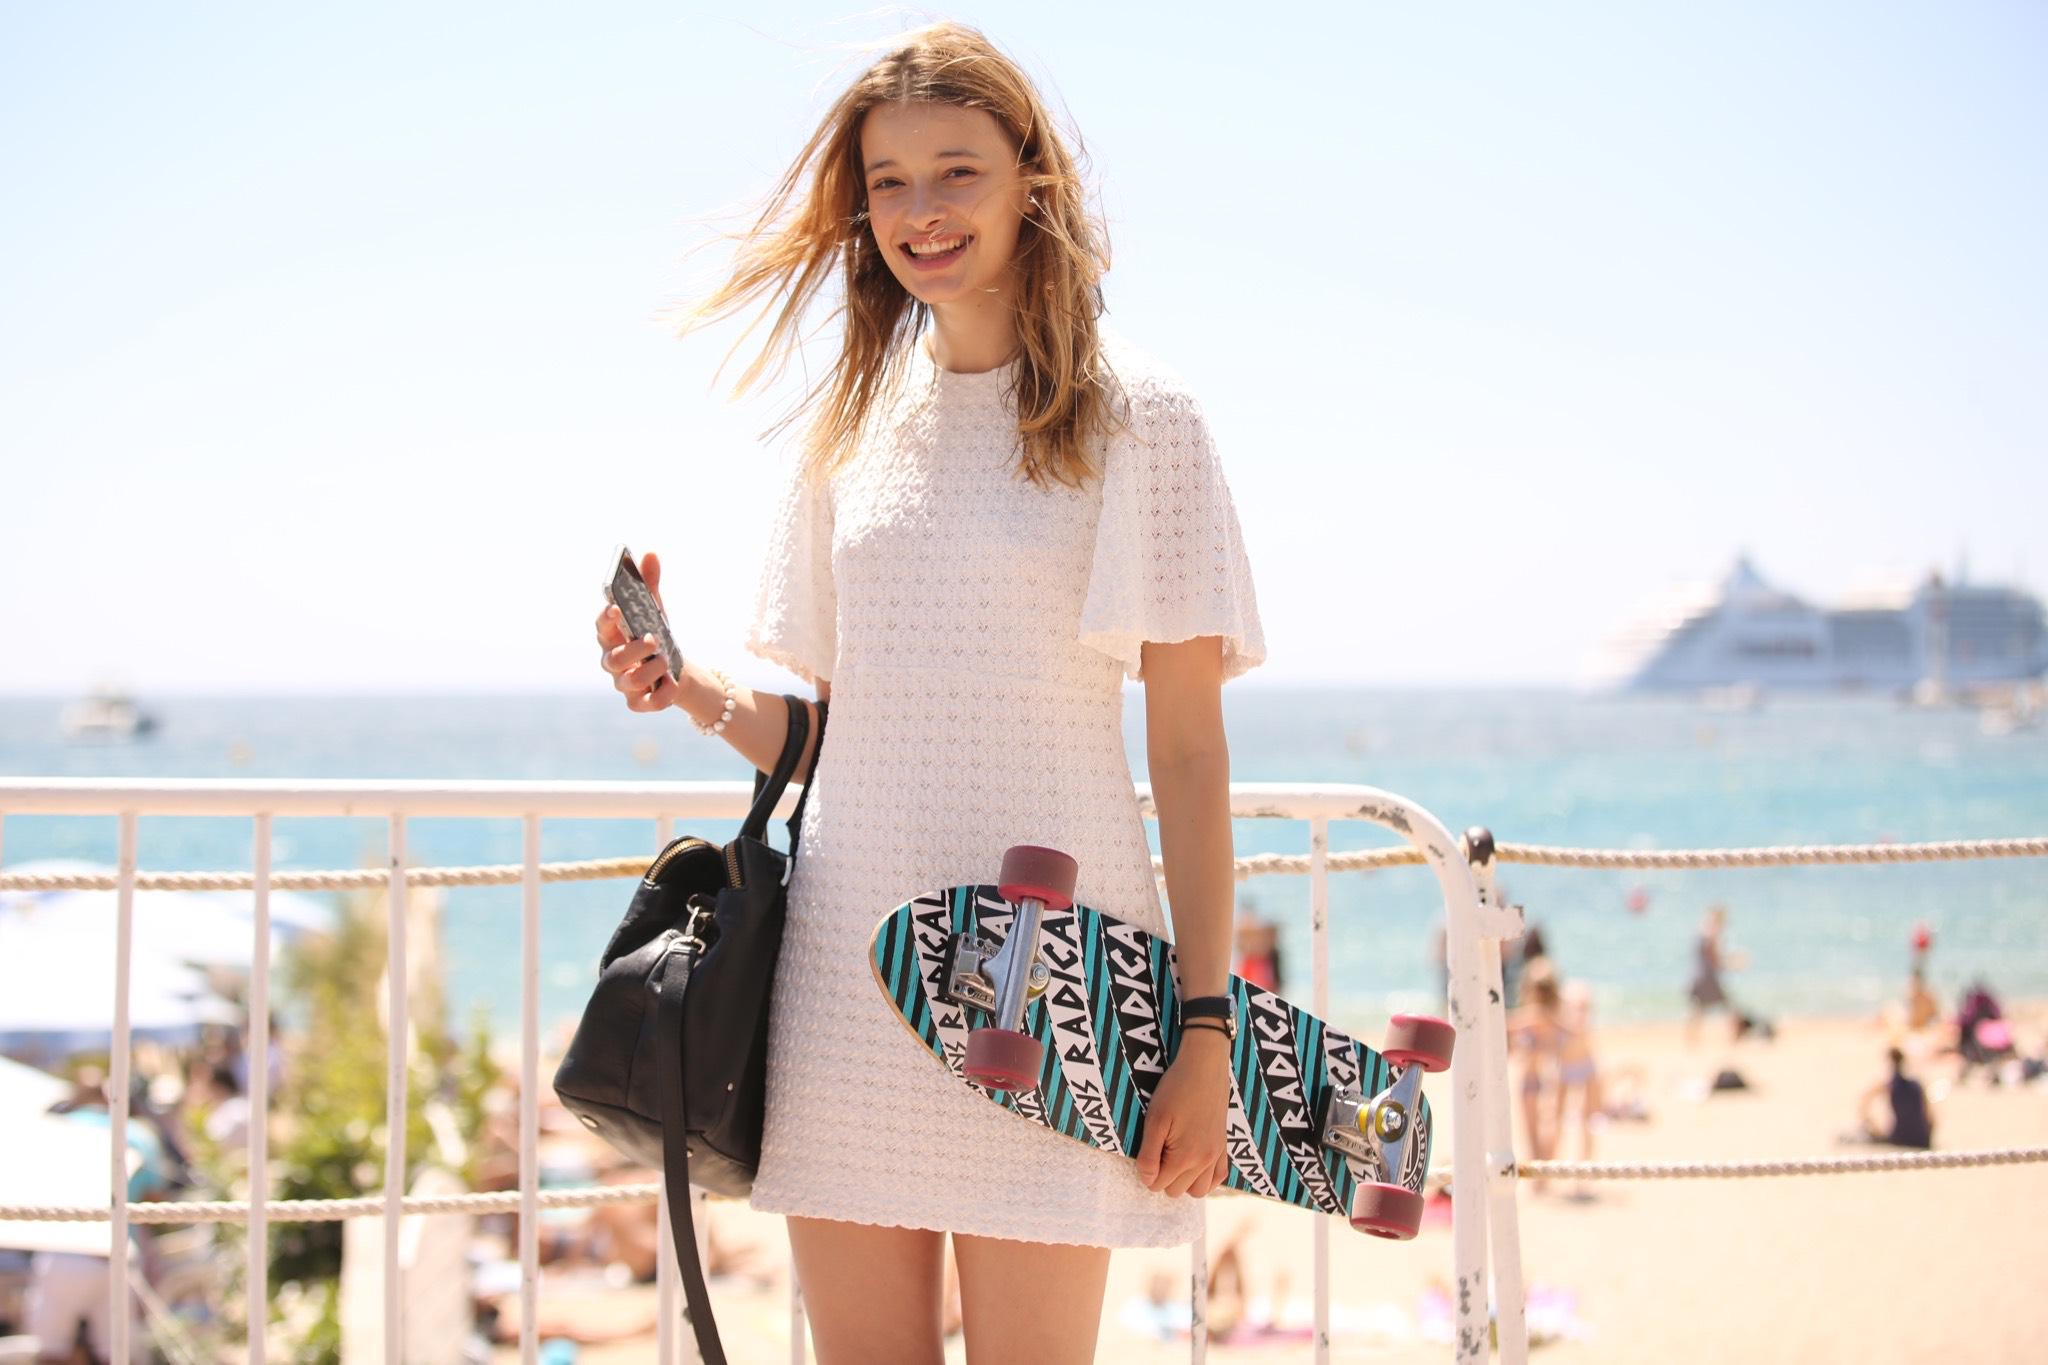 See the best street-style snaps from the south of France: http://t.co/J39dR65rR7 http://t.co/KYiYDh9SbV